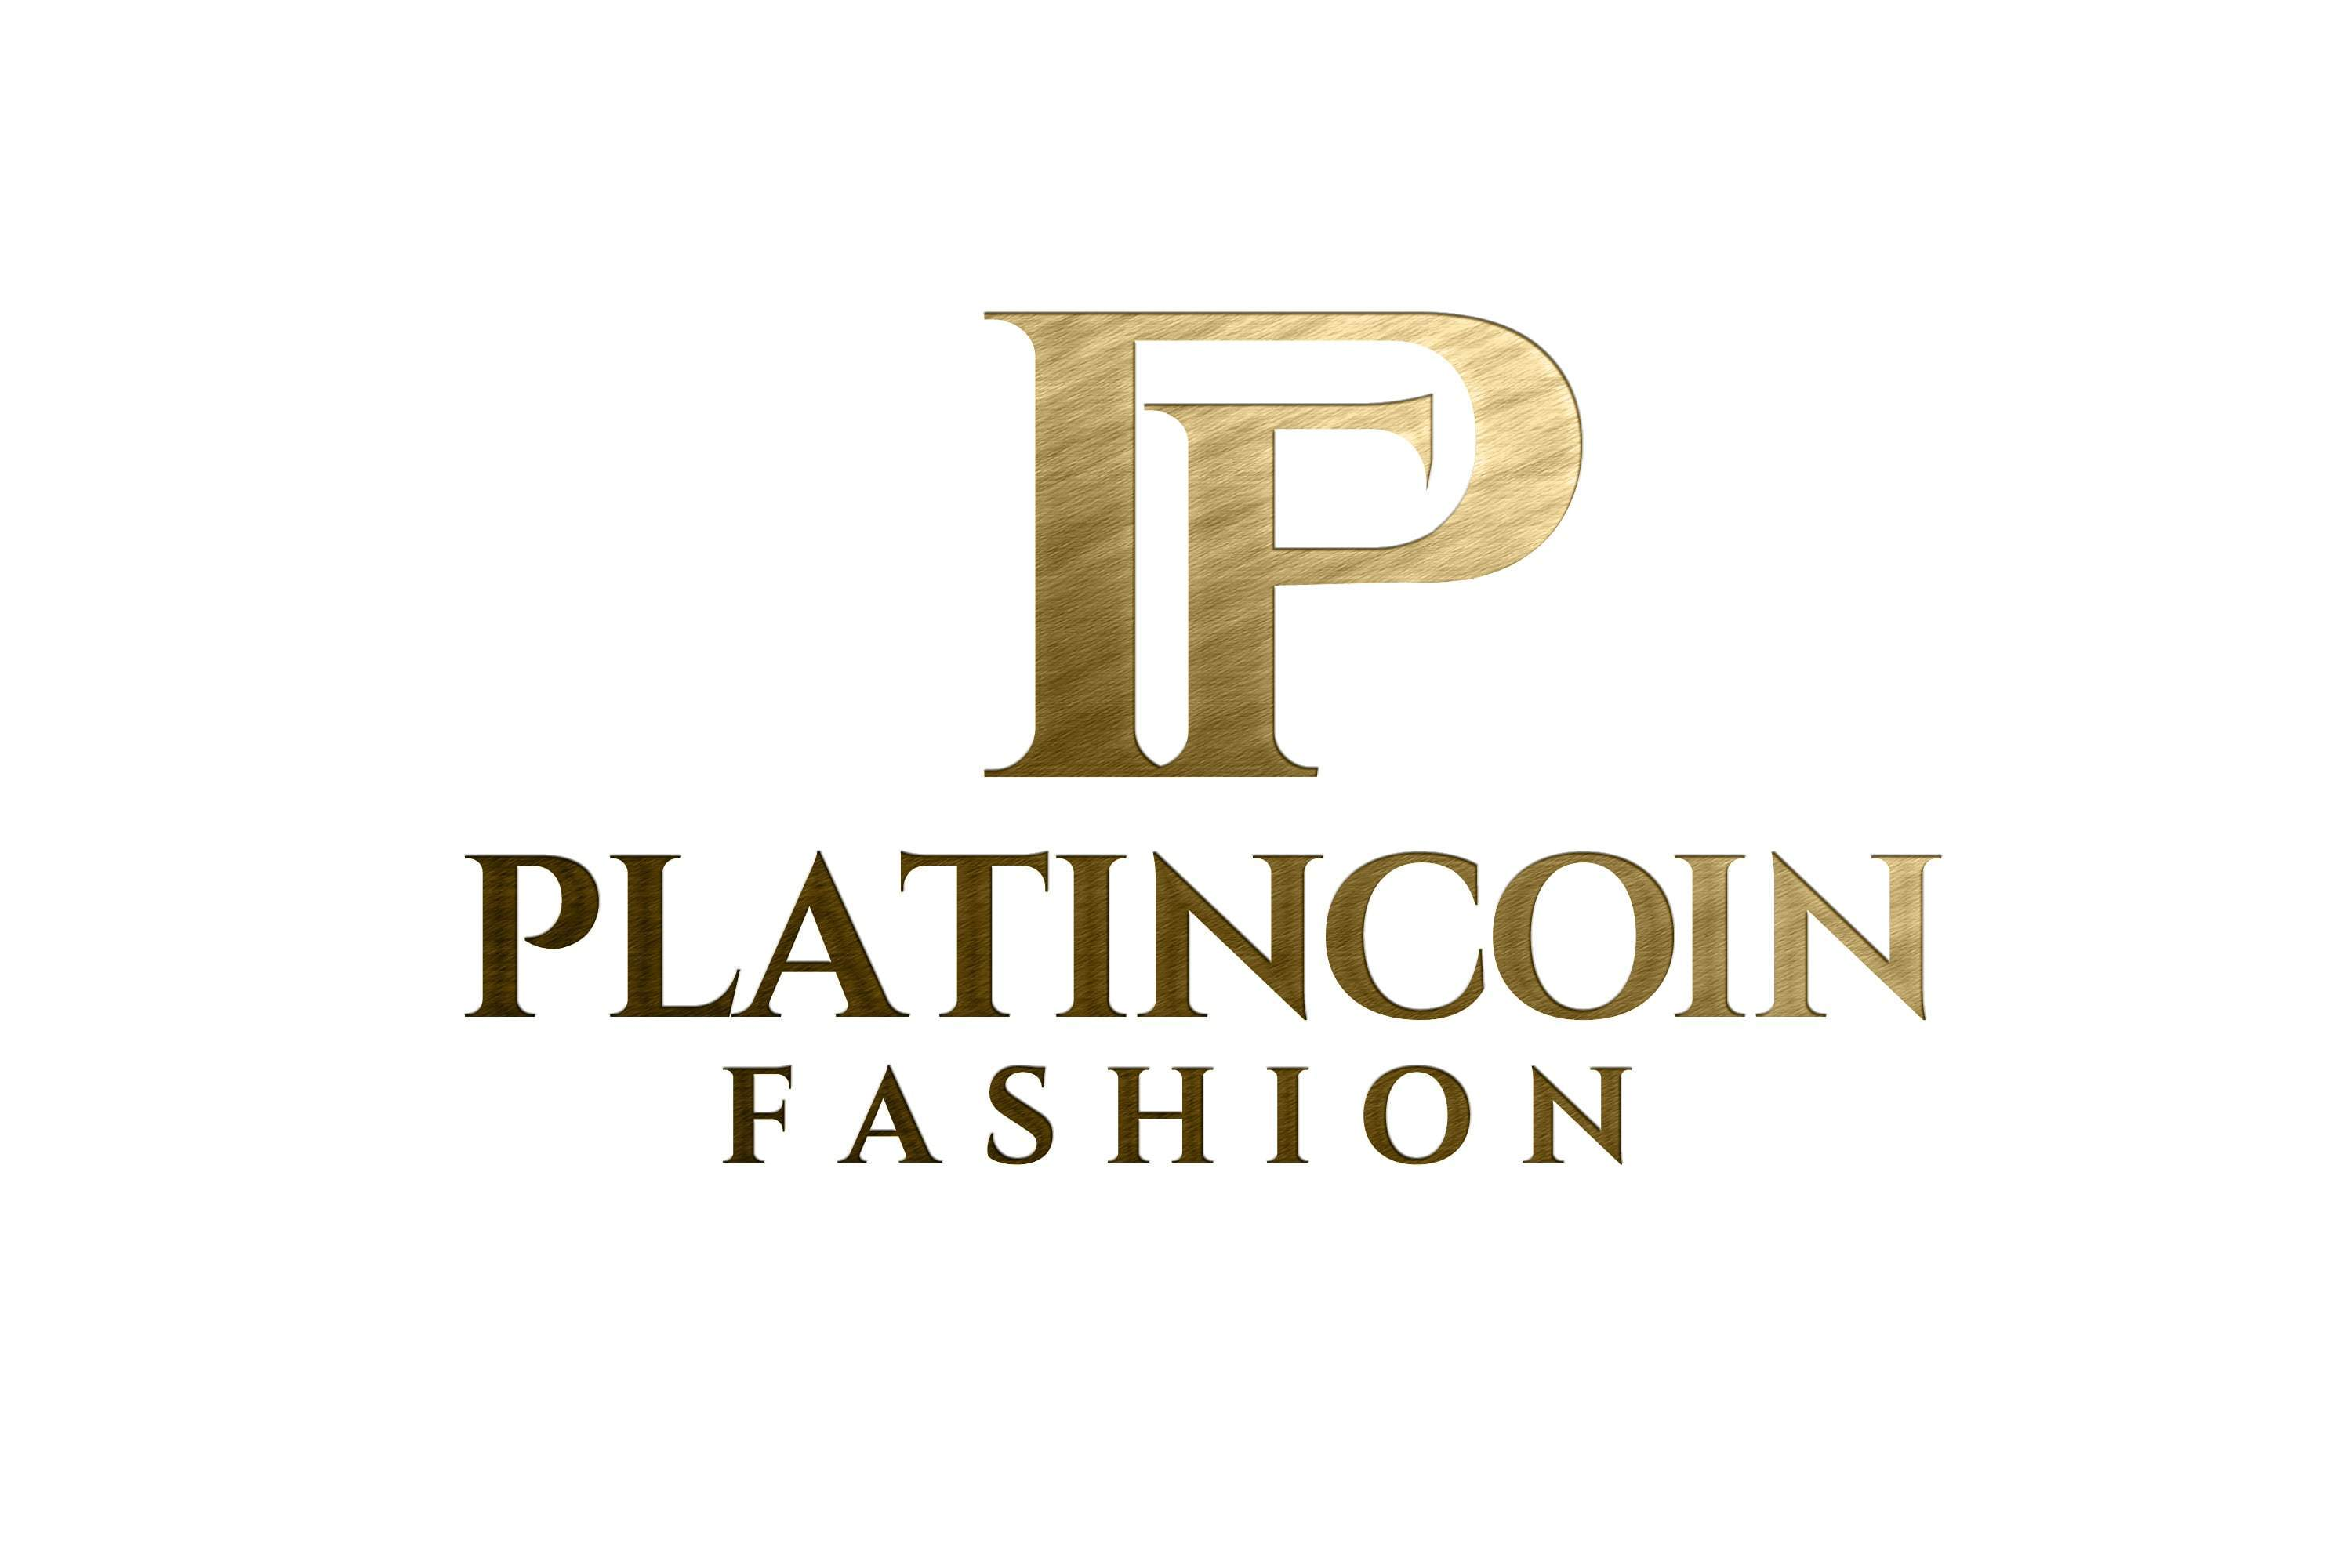 Platincoin-fashion